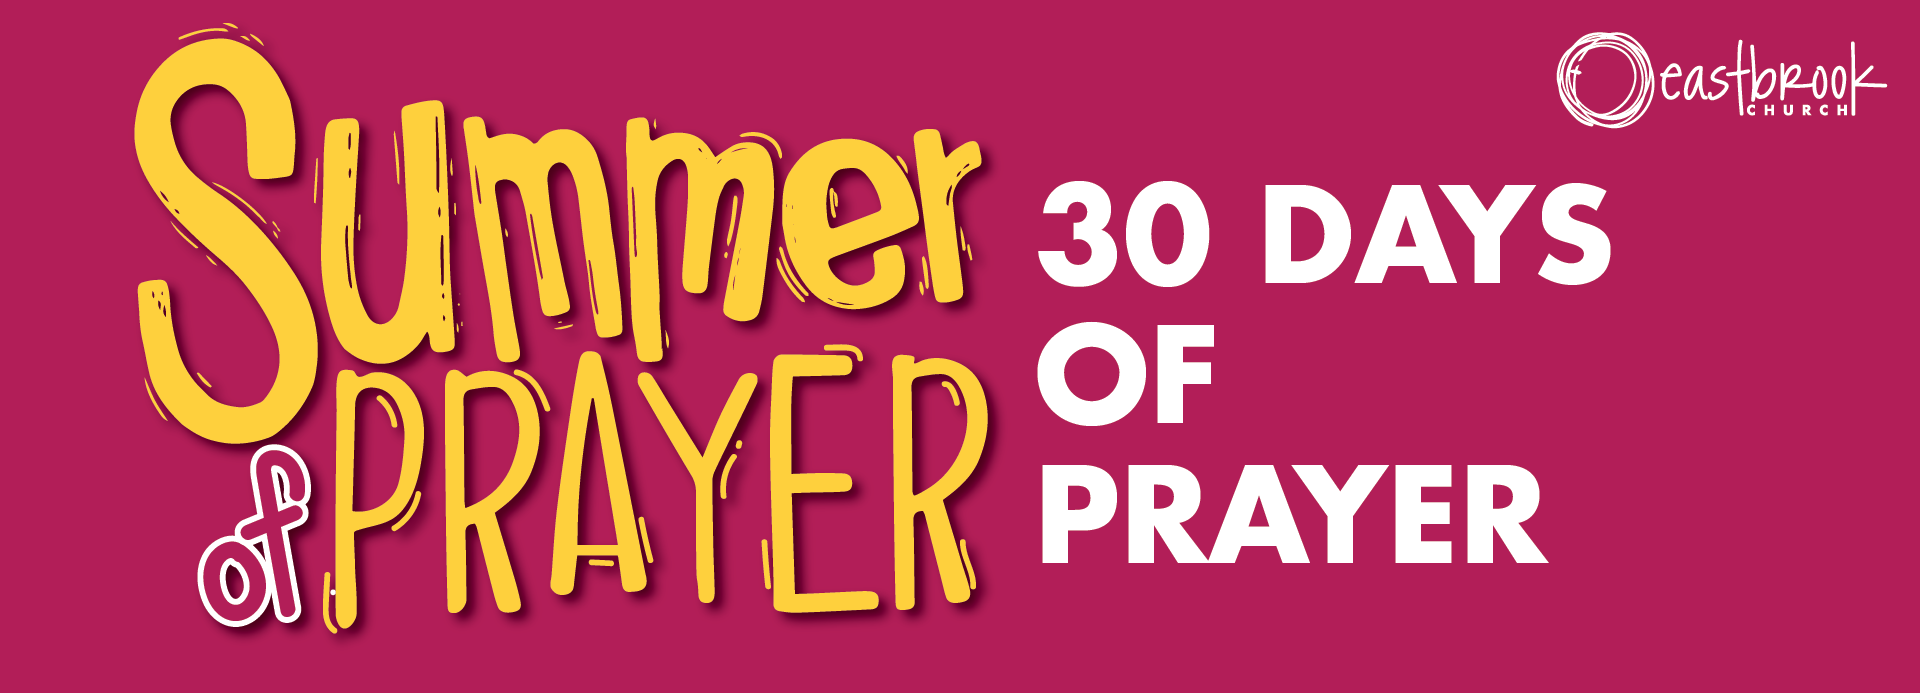 Summer of Prayer Ads_Banner